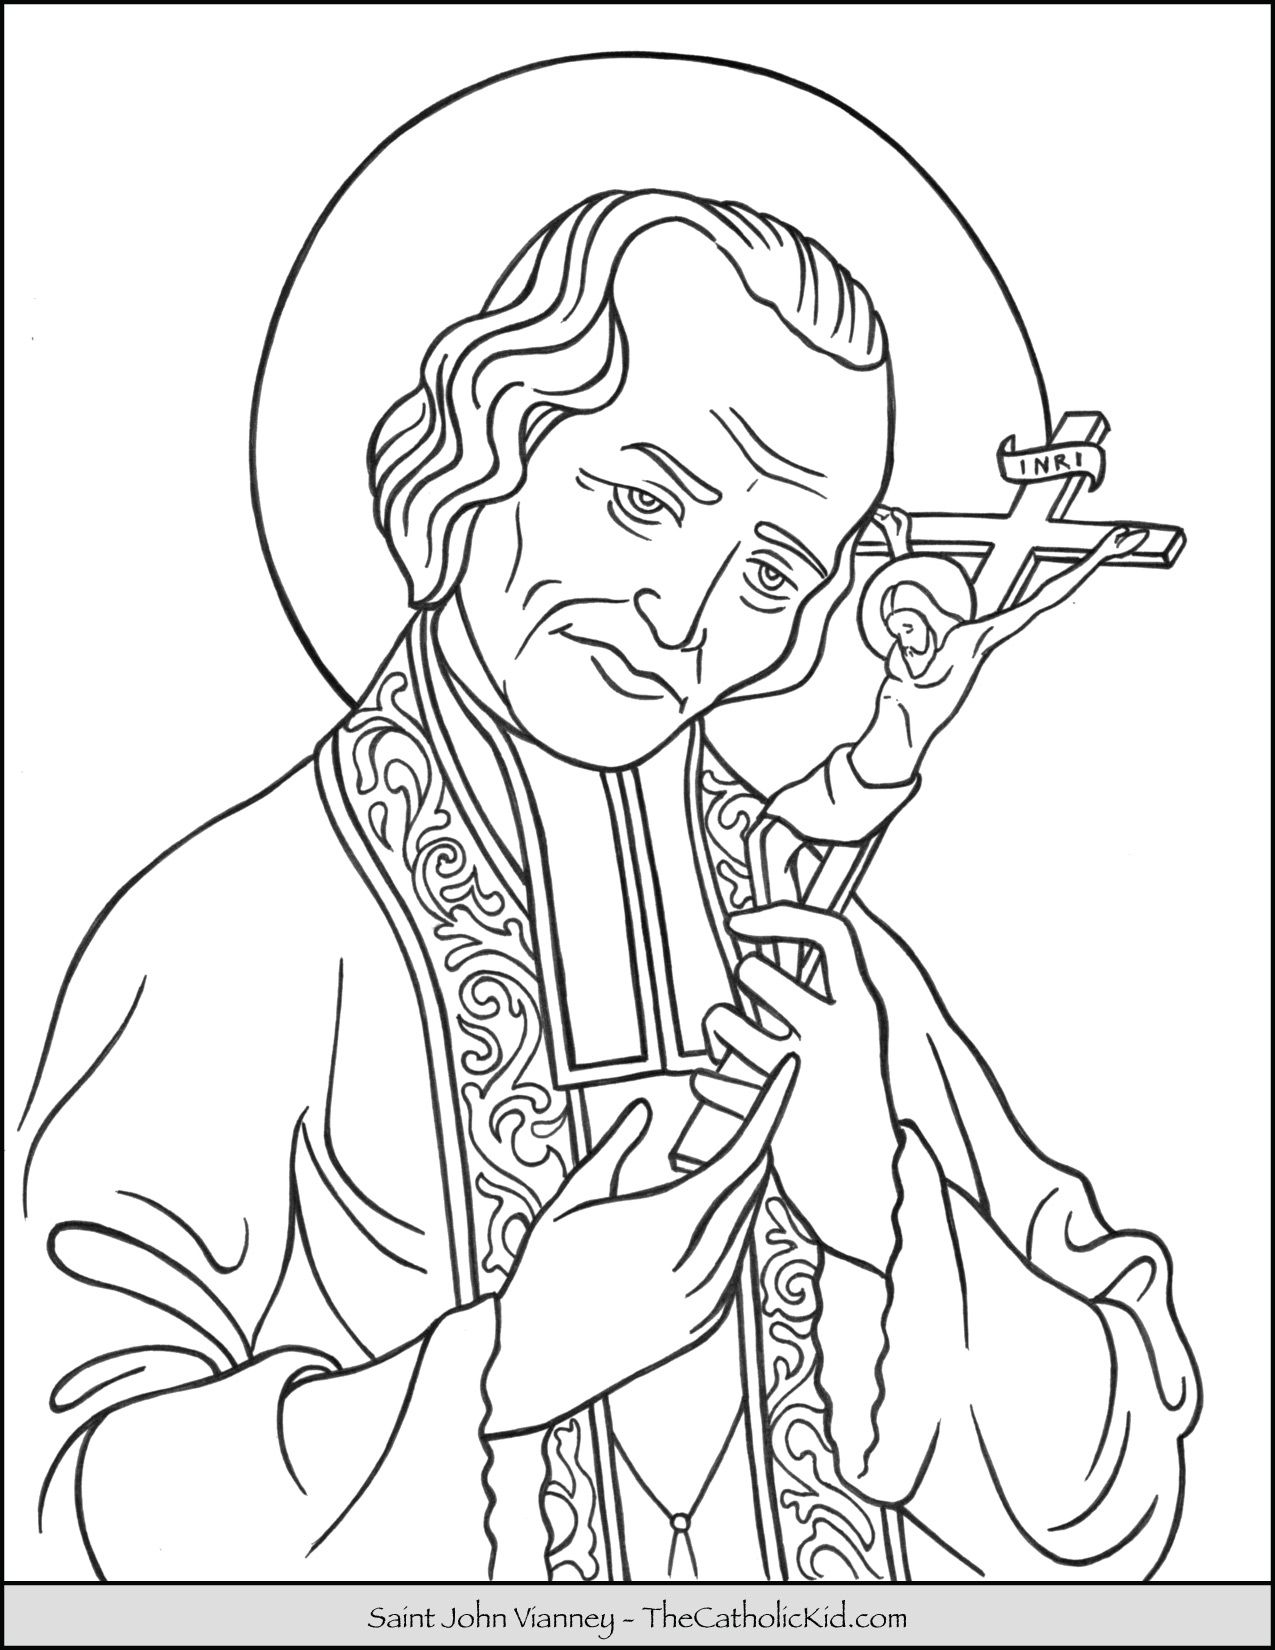 Saint John Vianney Coloring Page Thecatholickid Com With Images